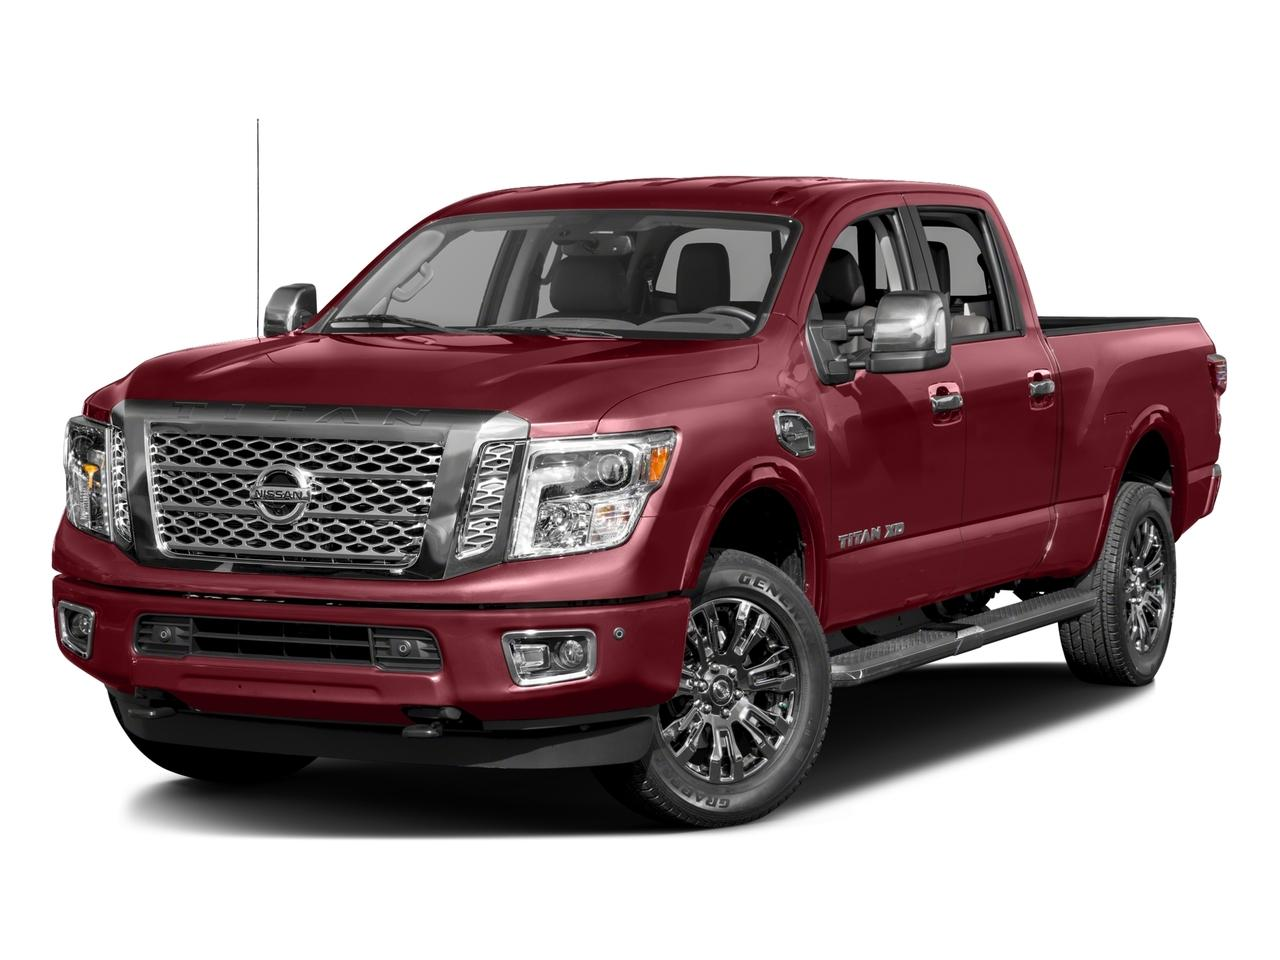 2016 Nissan Titan XD Vehicle Photo in Cary, NC 27511